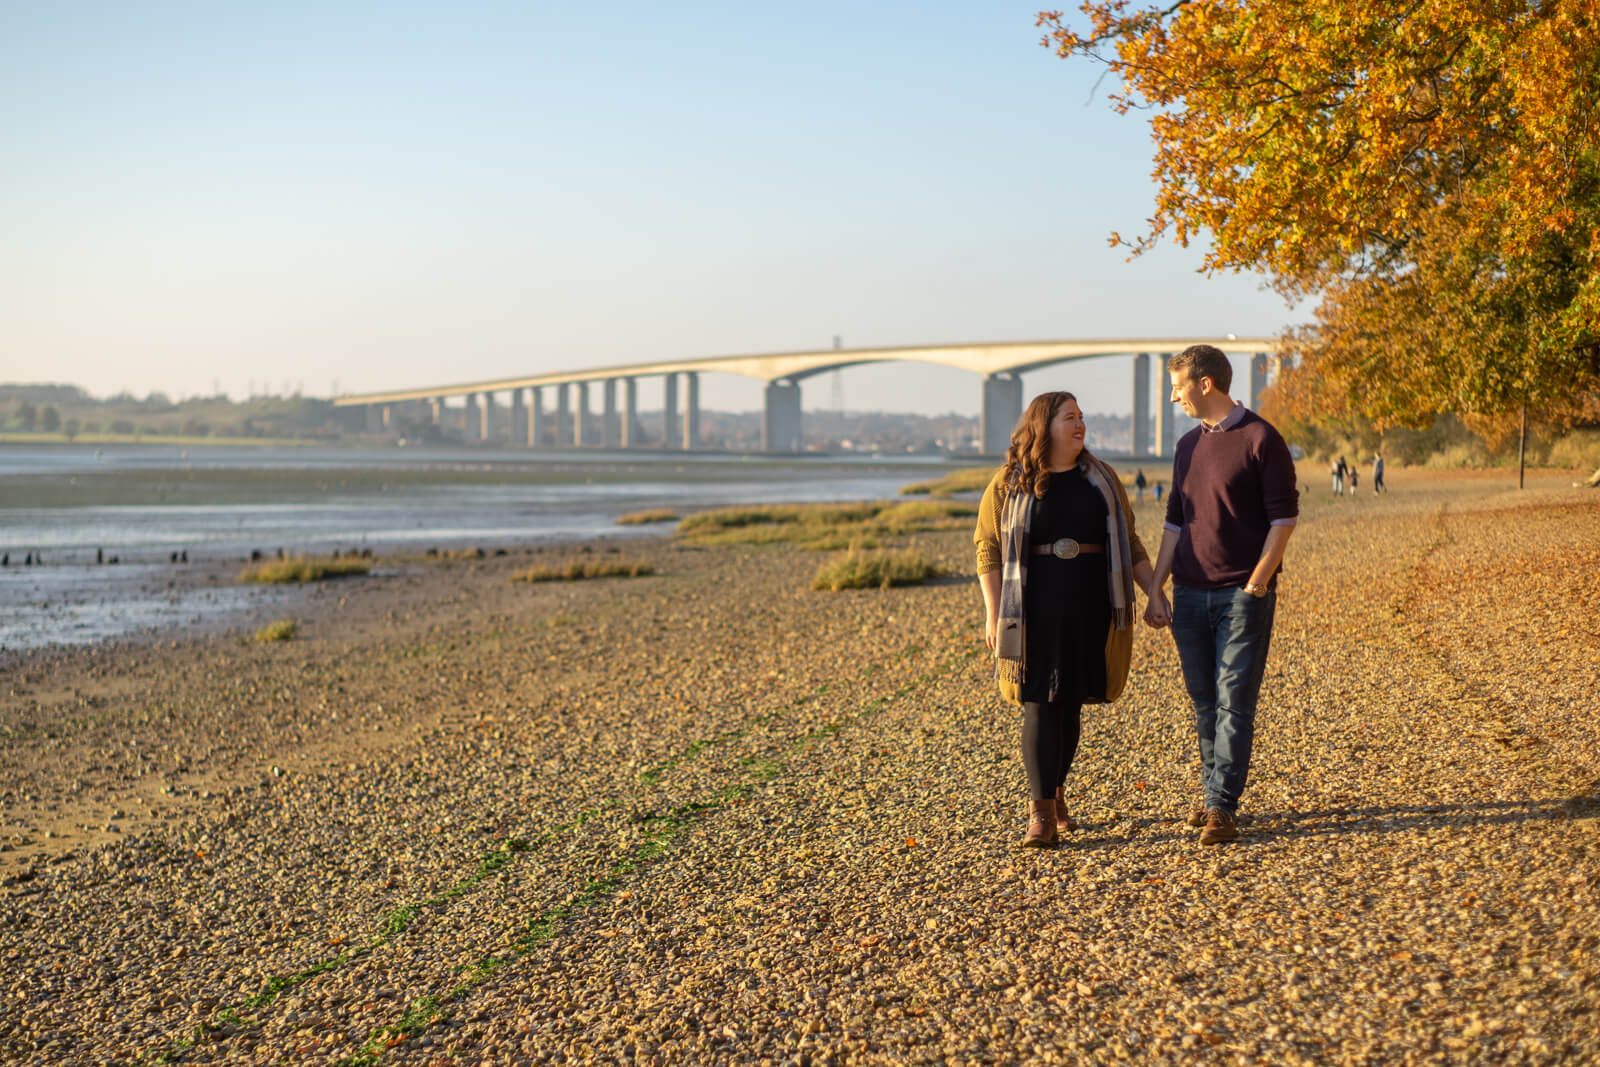 Engagement photography of a couple walking aling a shingle beach with a bridge in the background